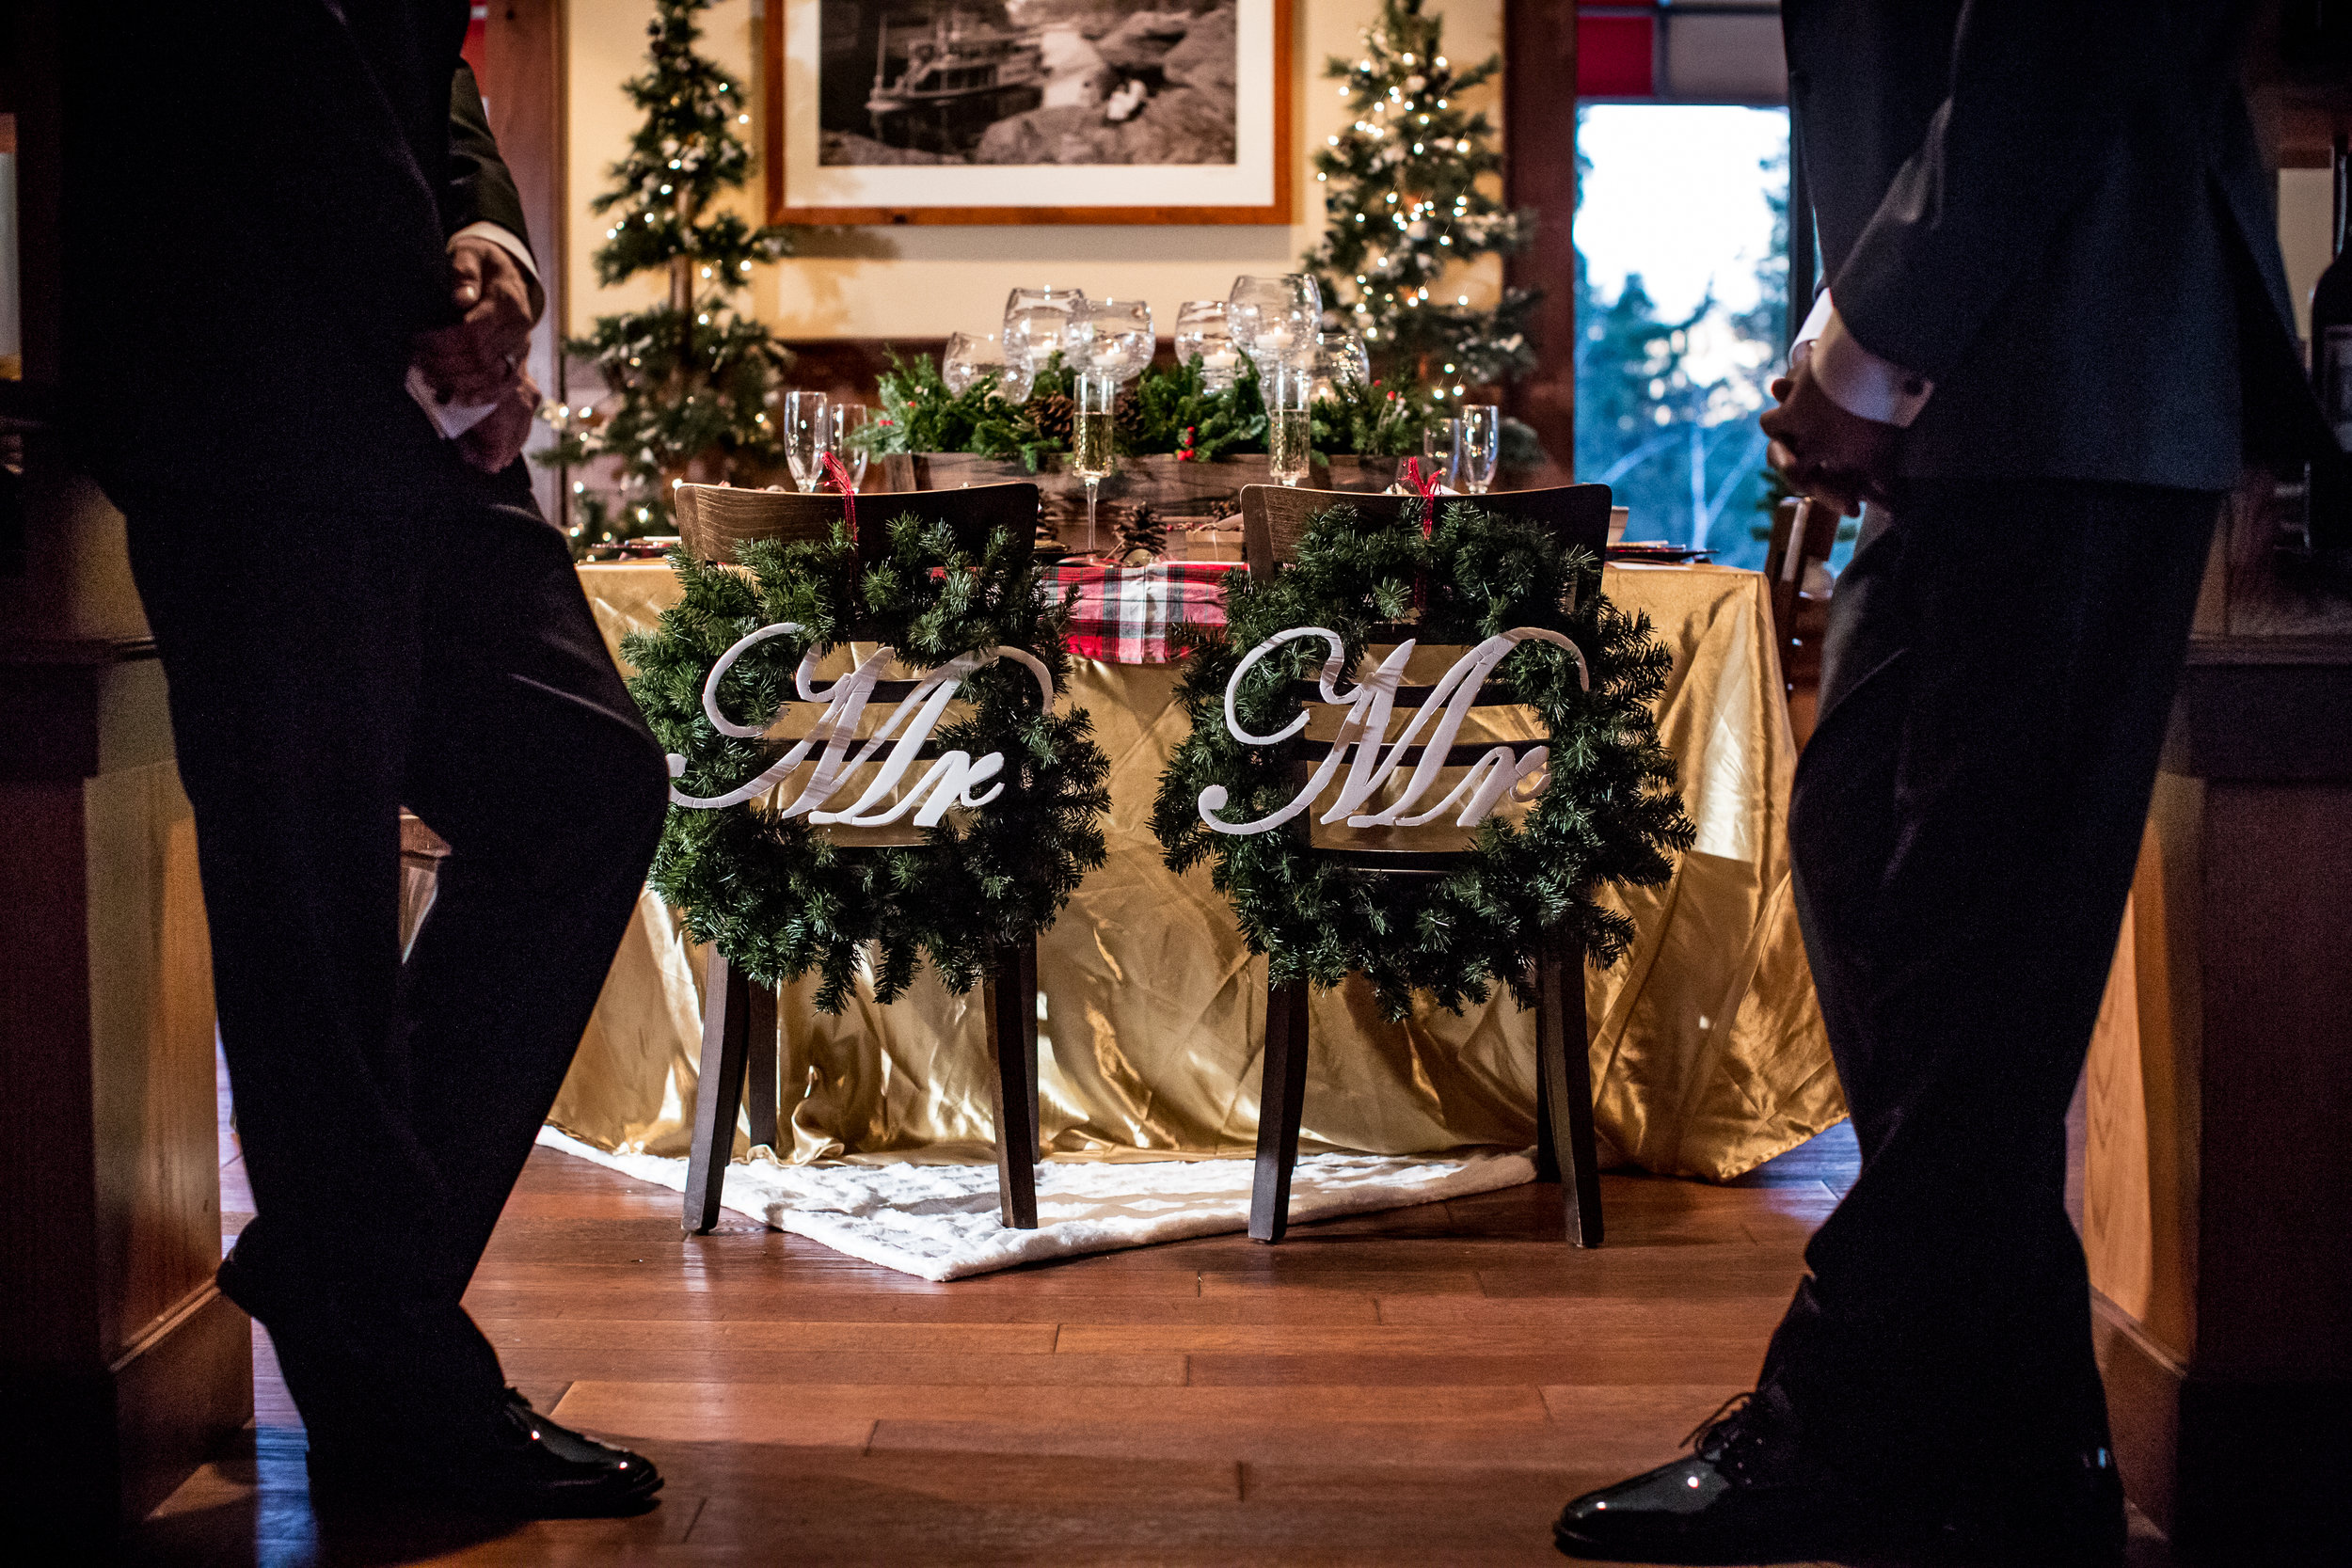 Chula Vista Christmas Wedding by Peer Canvas Photography & Films - 0072.jpg